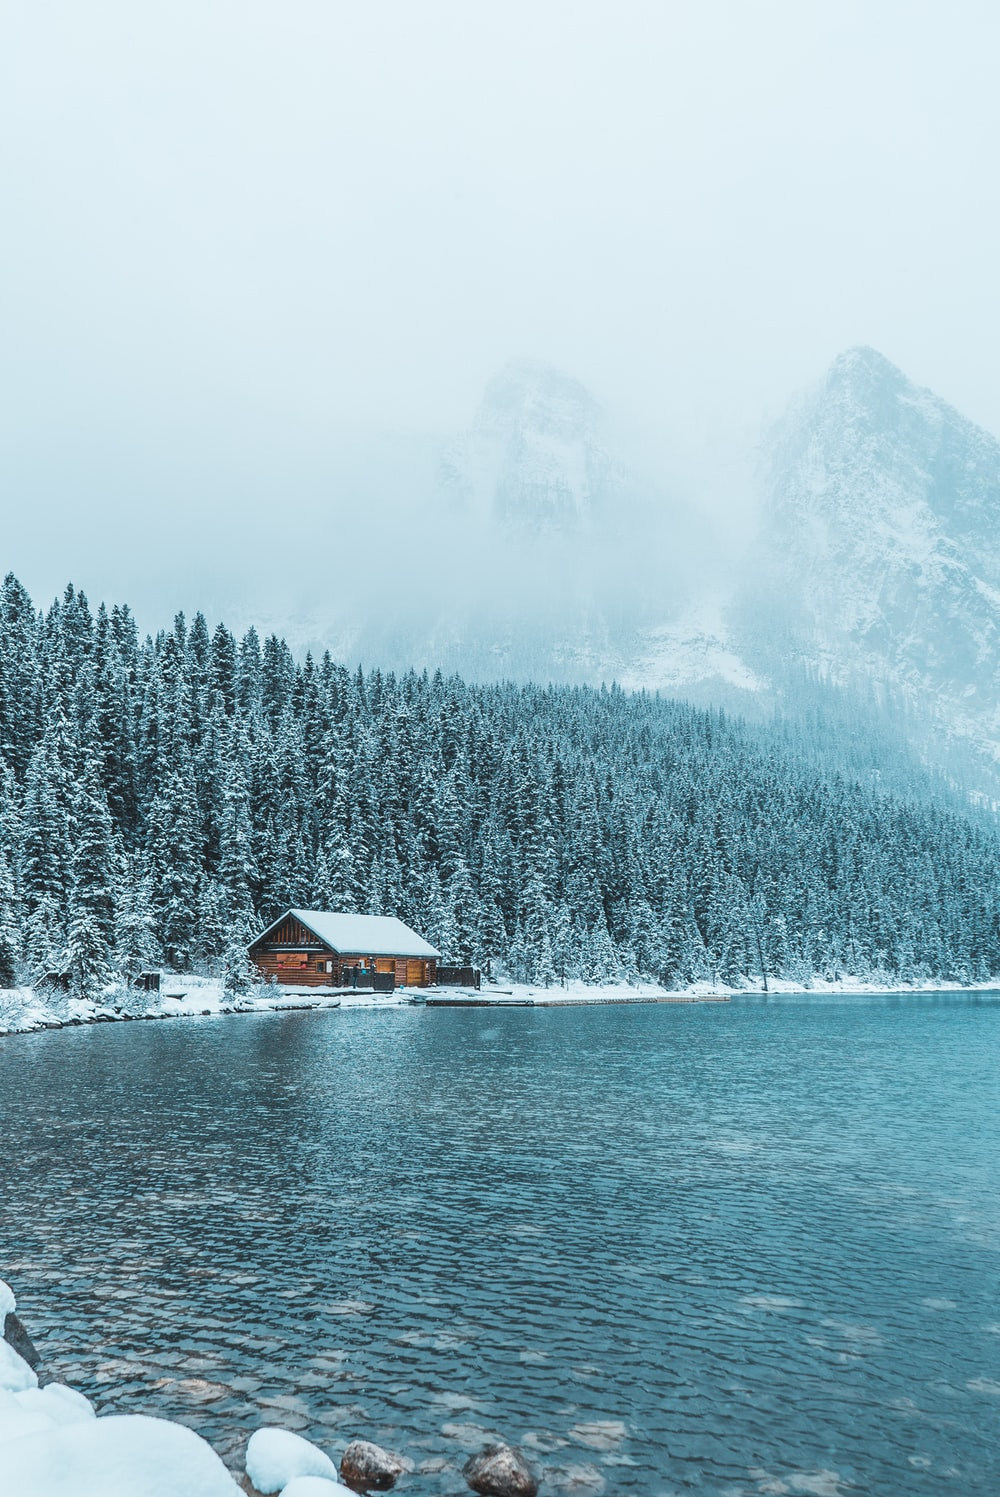 brown wooden house between trees and body of water during winter